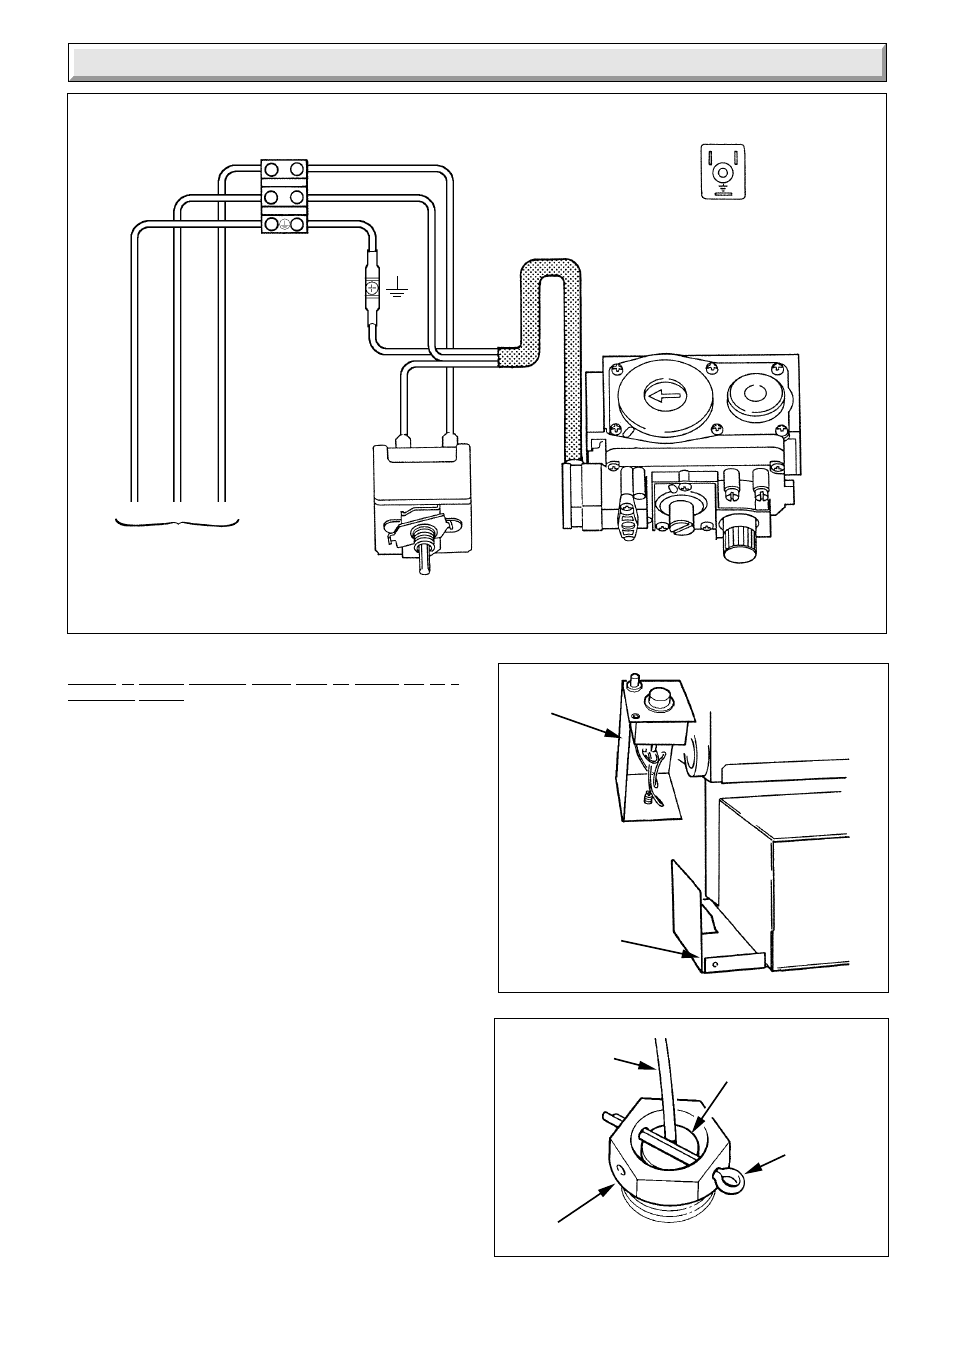 hight resolution of 5 electrical wiring glow worm 56 2 back boiler user manual page 11 24